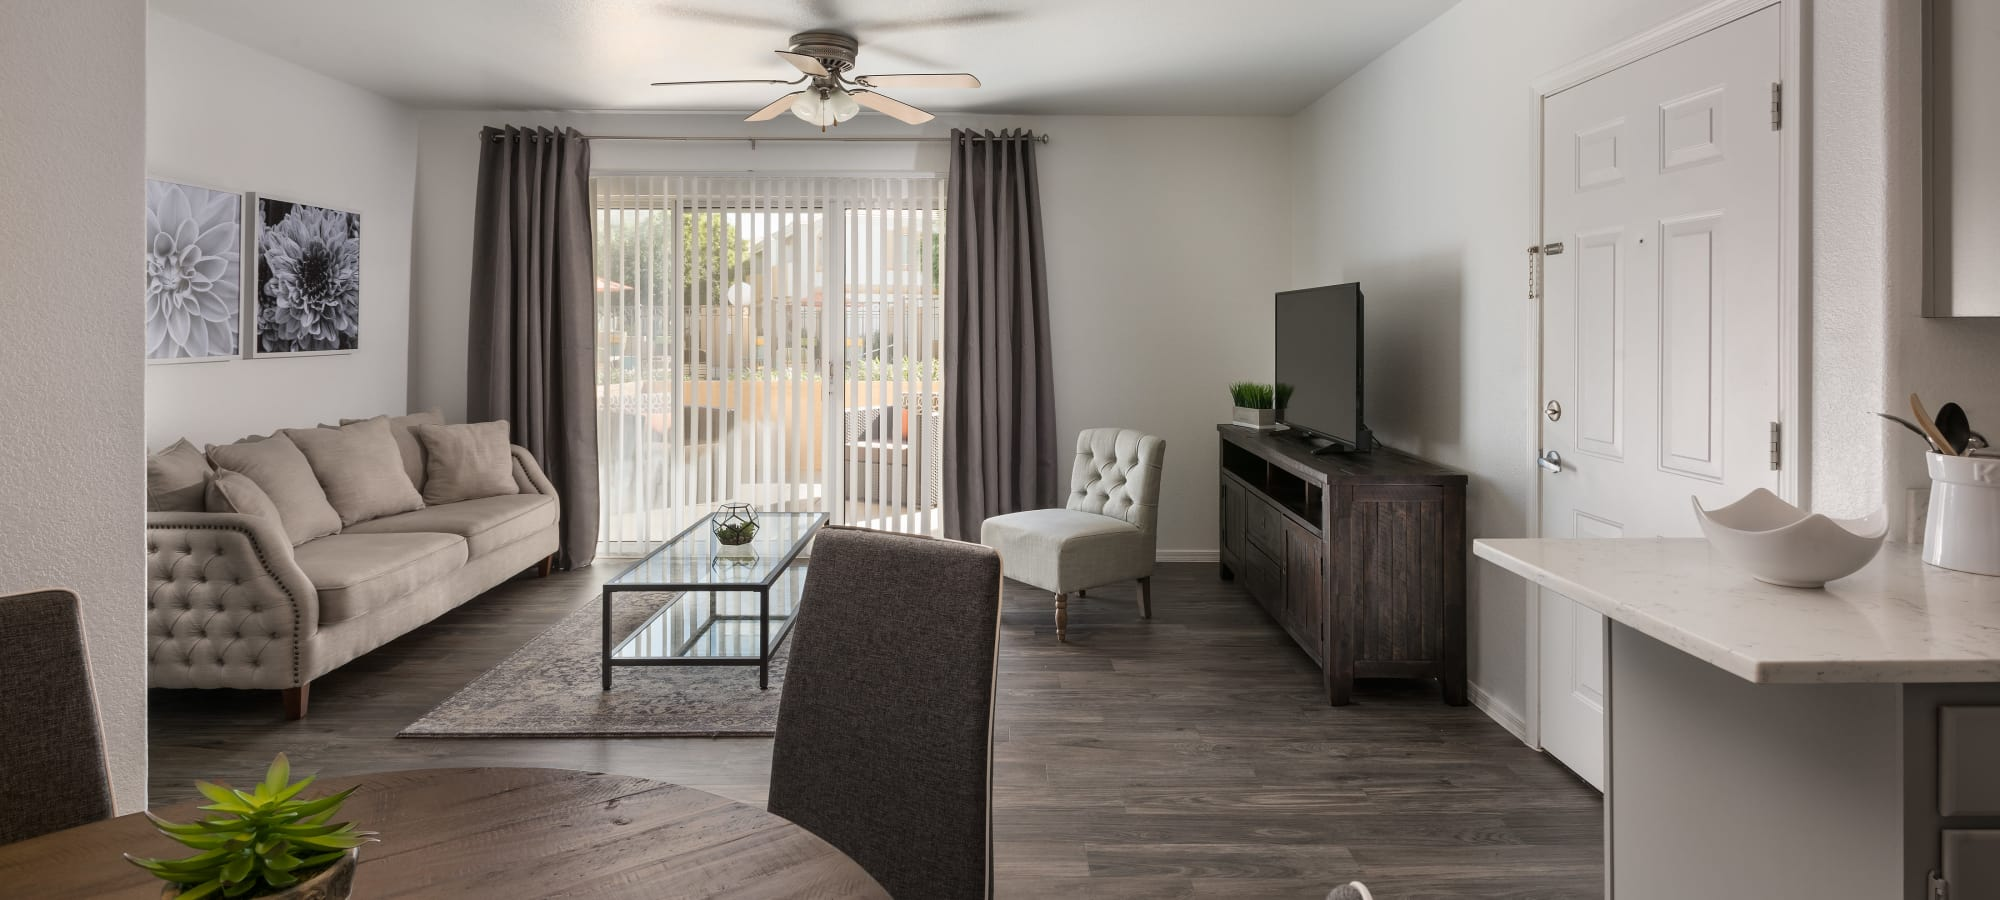 Spacious living room in model home at Club Cancun in Chandler, Arizona